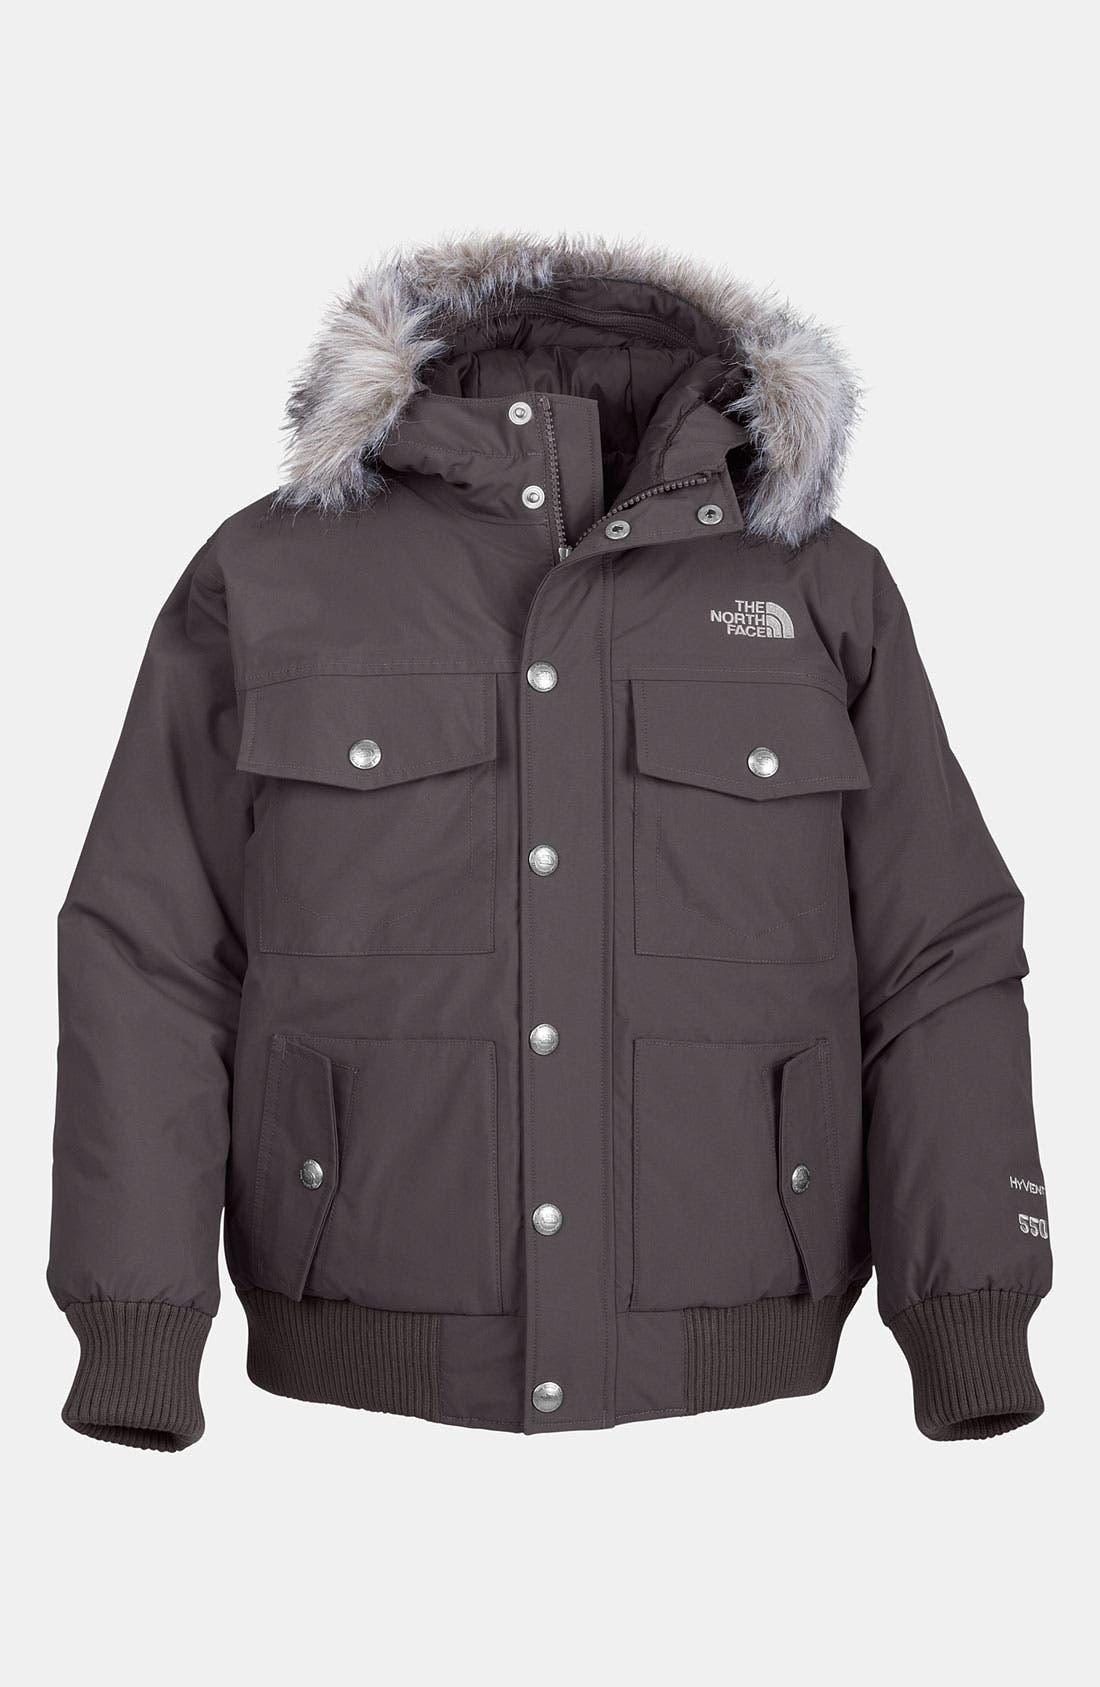 Alternate Image 1 Selected - The North Face 'Gotham' Down Jacket (Big Boys)